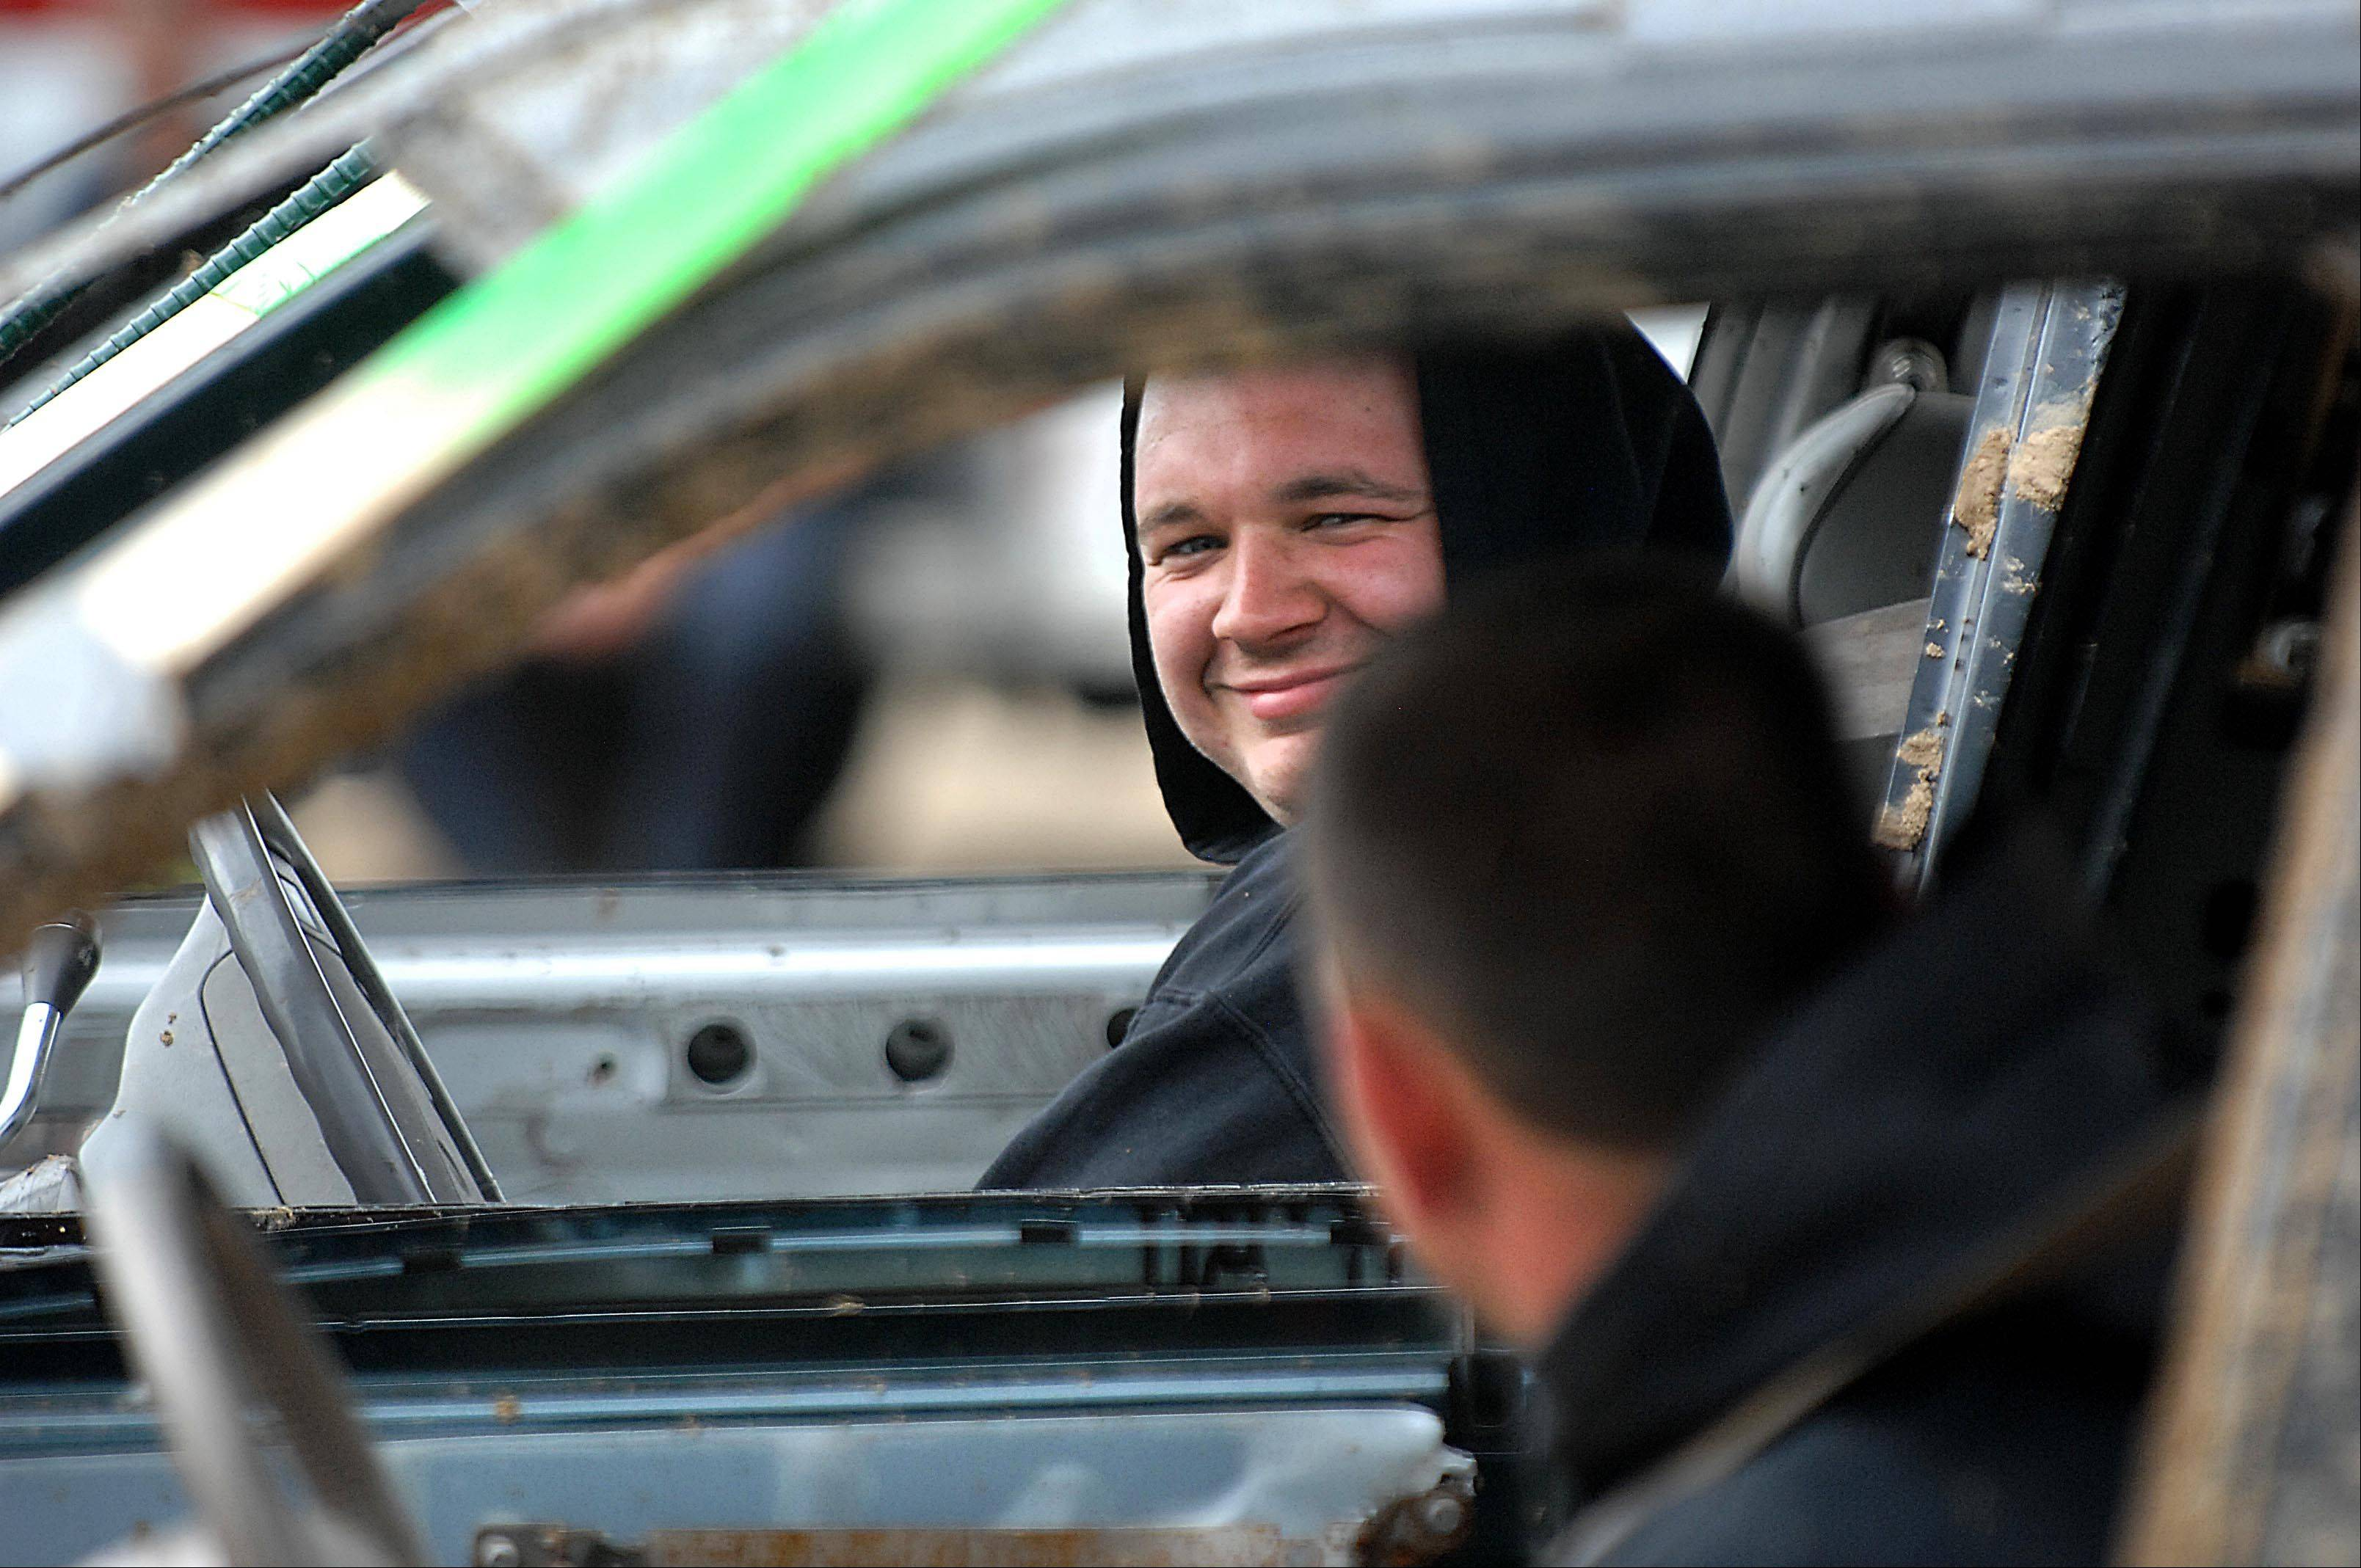 Michael Brancecum of St. Charles laughs with Randy Ellis of Belvidere before the Championship heat of the Demolition Derby at the Kane County Fair Sunday in St. Charles. Ellis won the event.